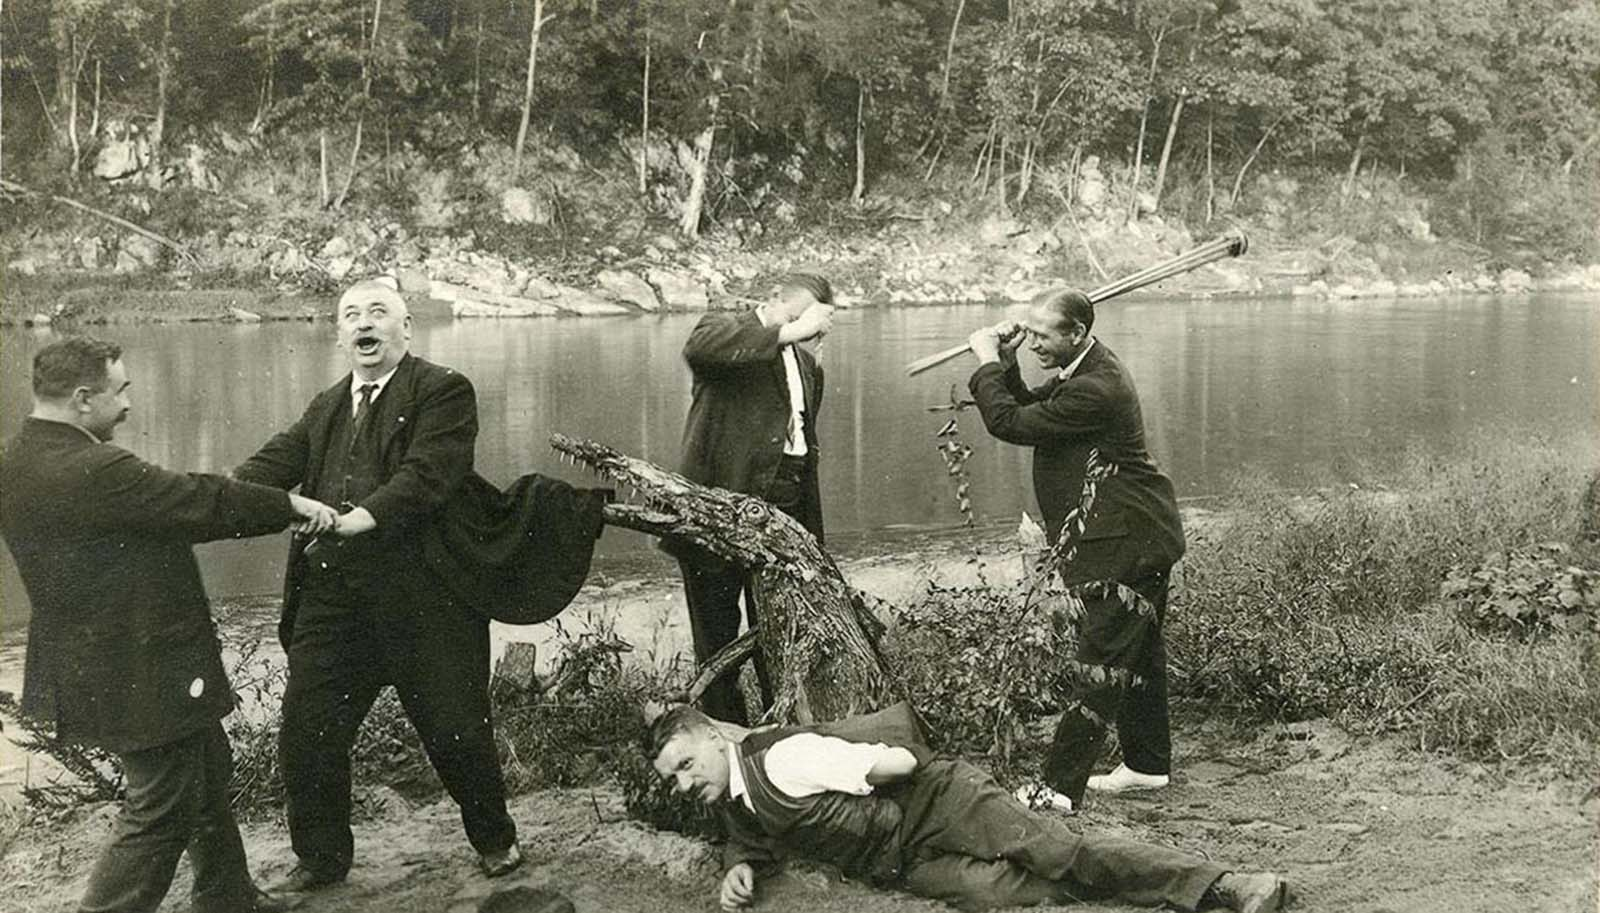 German internees playfully stage an